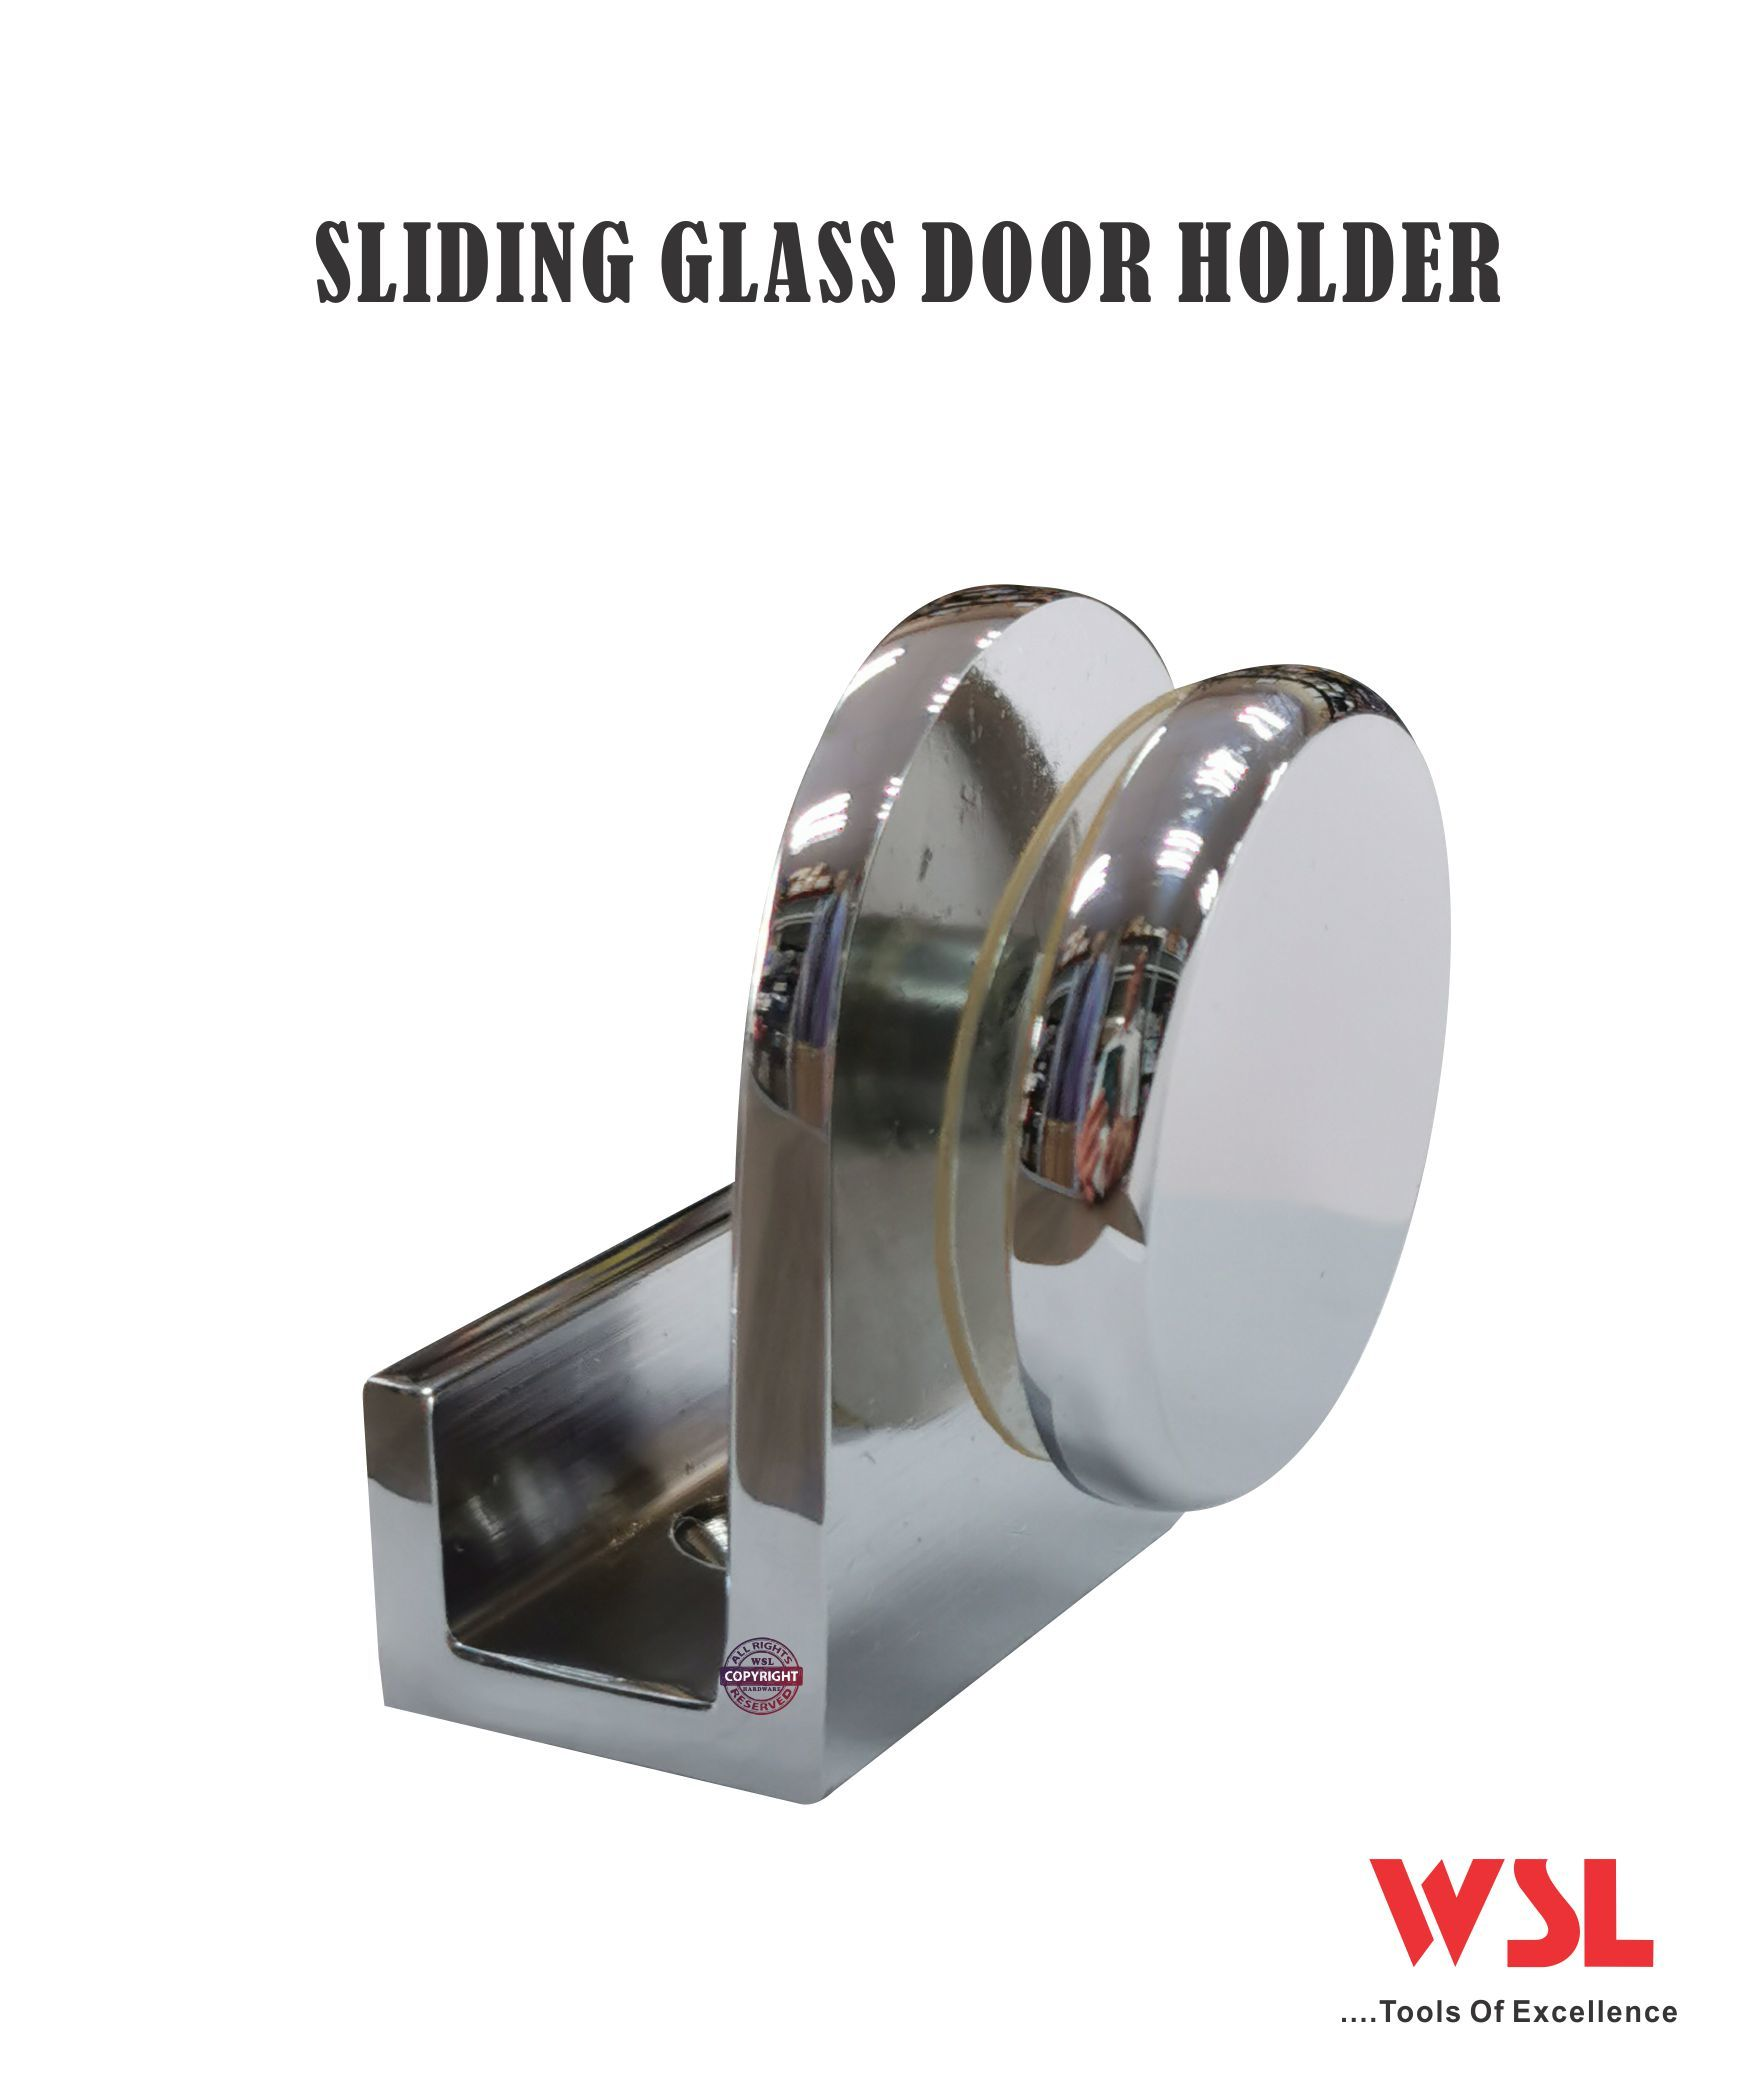 Sliding glass door holder.jpg